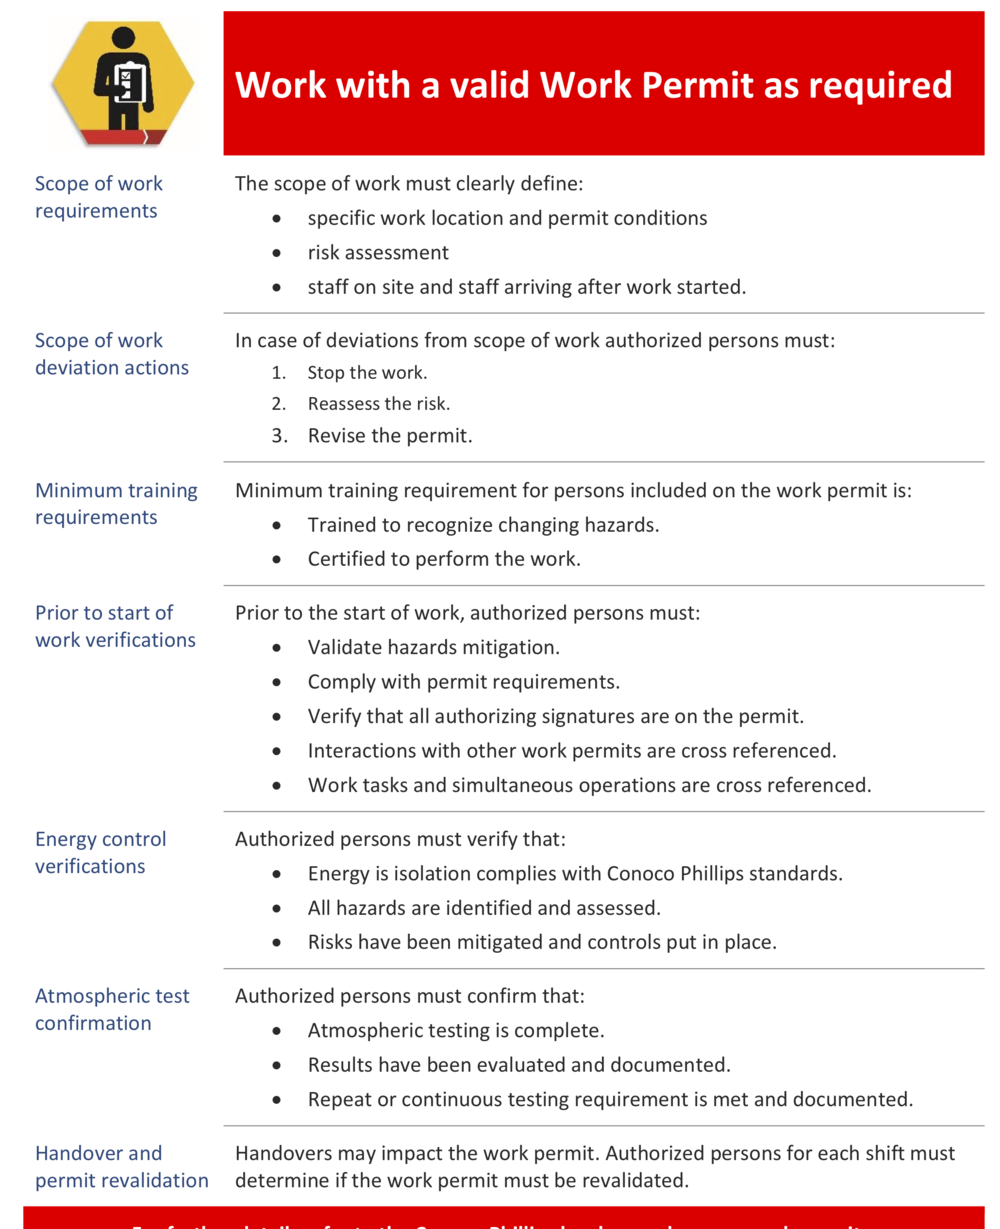 This is exactly the same document, but this time with the principles of Usability Mapping applied, How quickly can you find what you need to know about atmospheric testing? (click for a larger image)